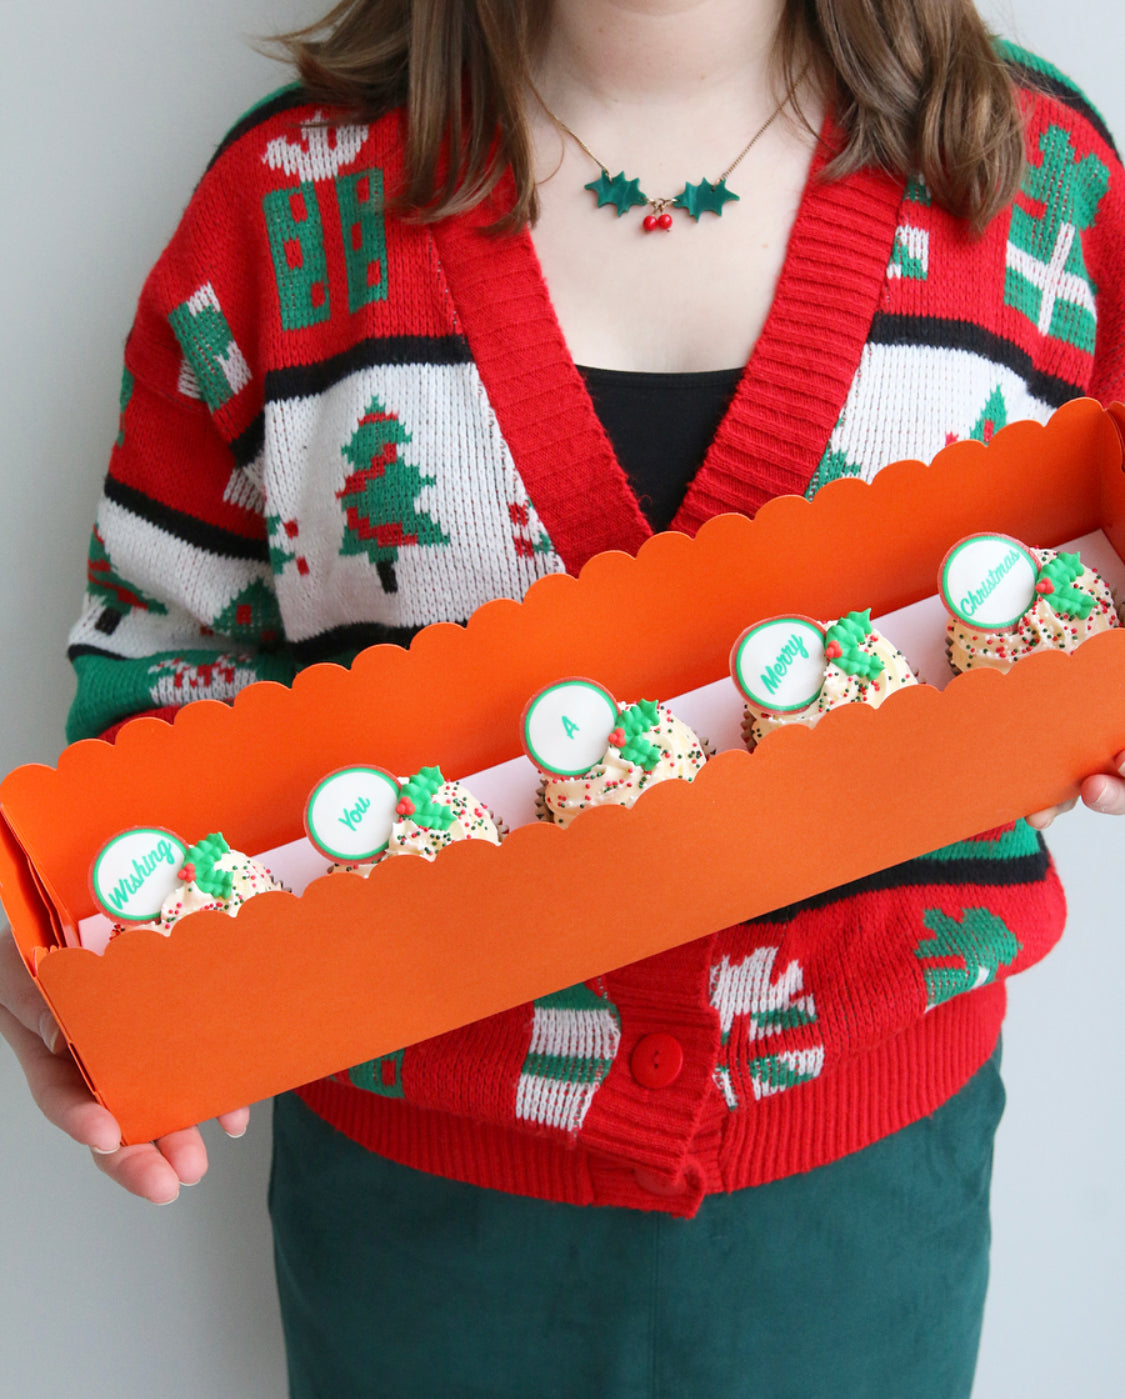 Say It With Cake...Christmas Cupcakes